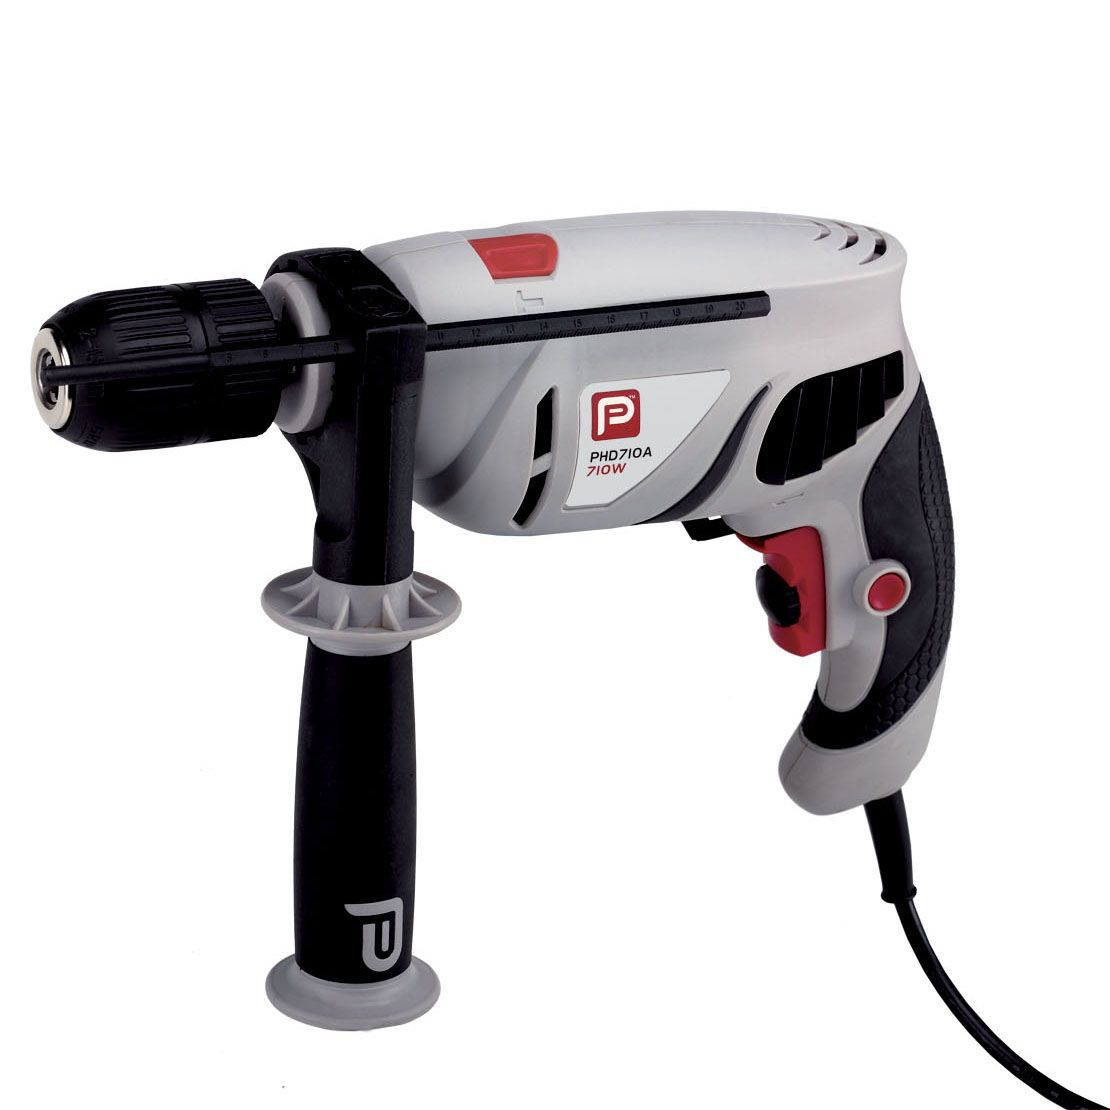 performance power corded 710w hammer drill departments. Black Bedroom Furniture Sets. Home Design Ideas